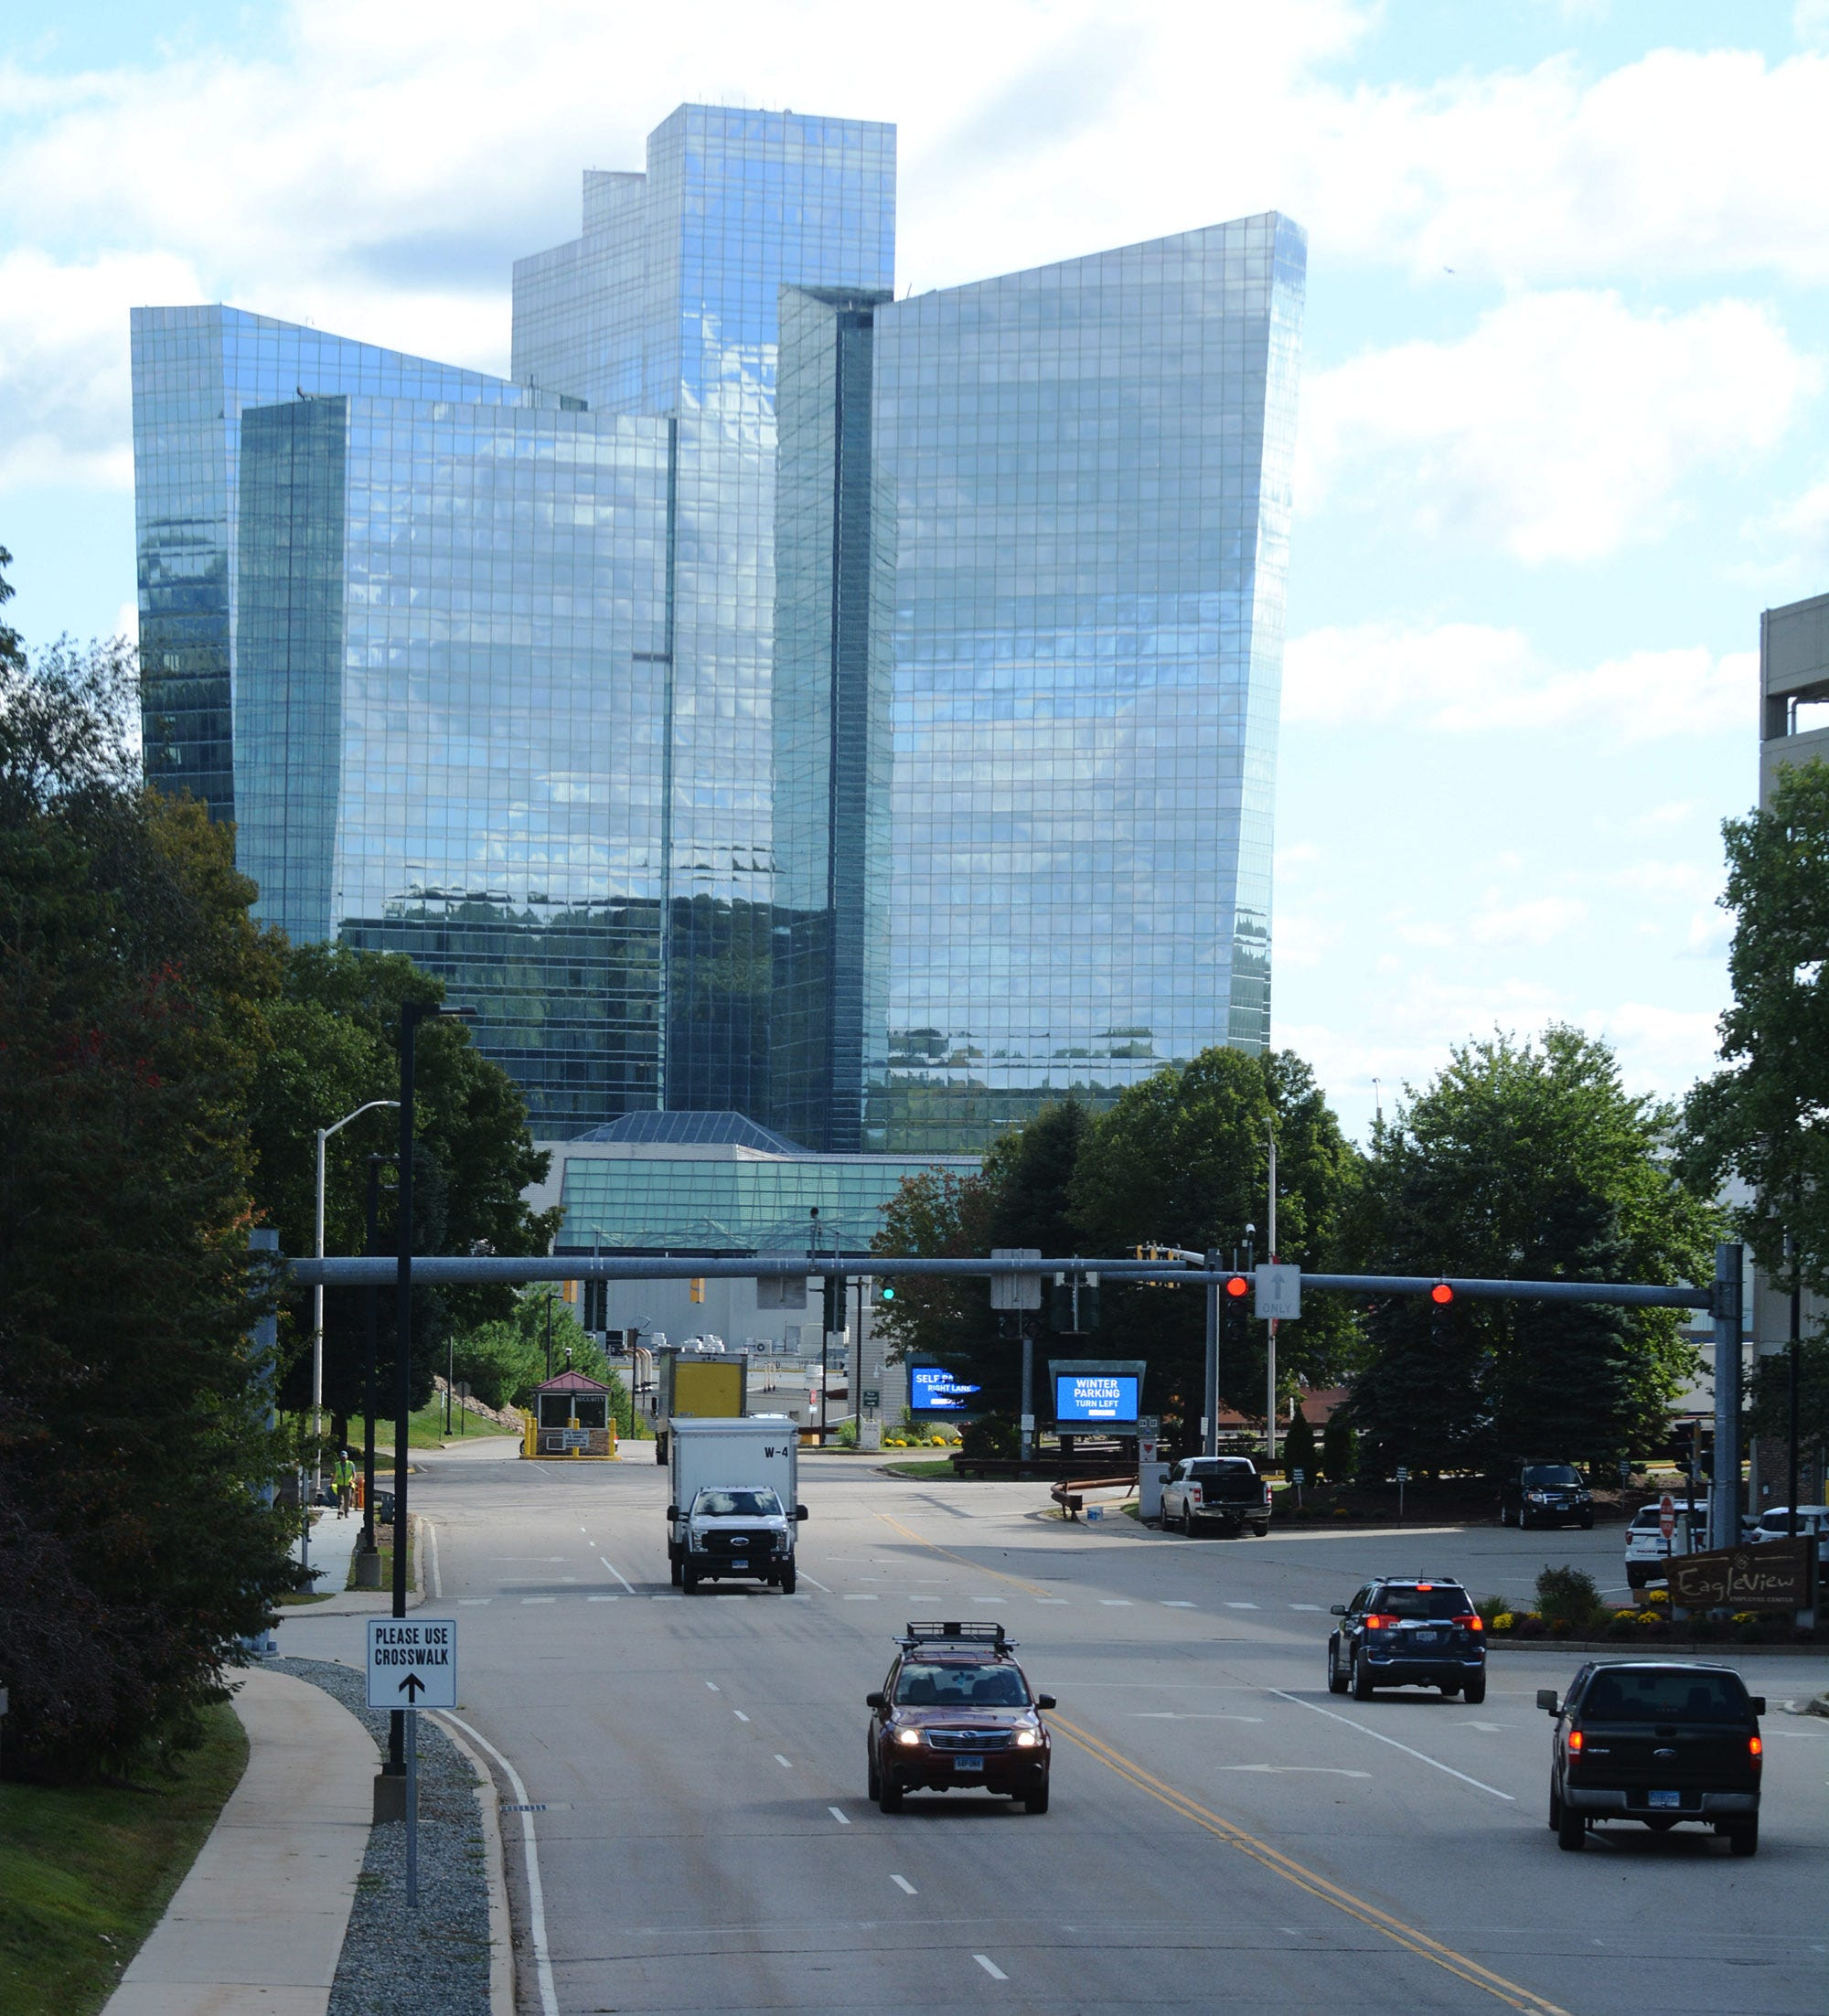 Mohegan Sun first opened on October 12, 1996. Twenty-five years in, president and CEO Jeff Hamilton said following the Spirit of Aquai in the company's values has brought success.